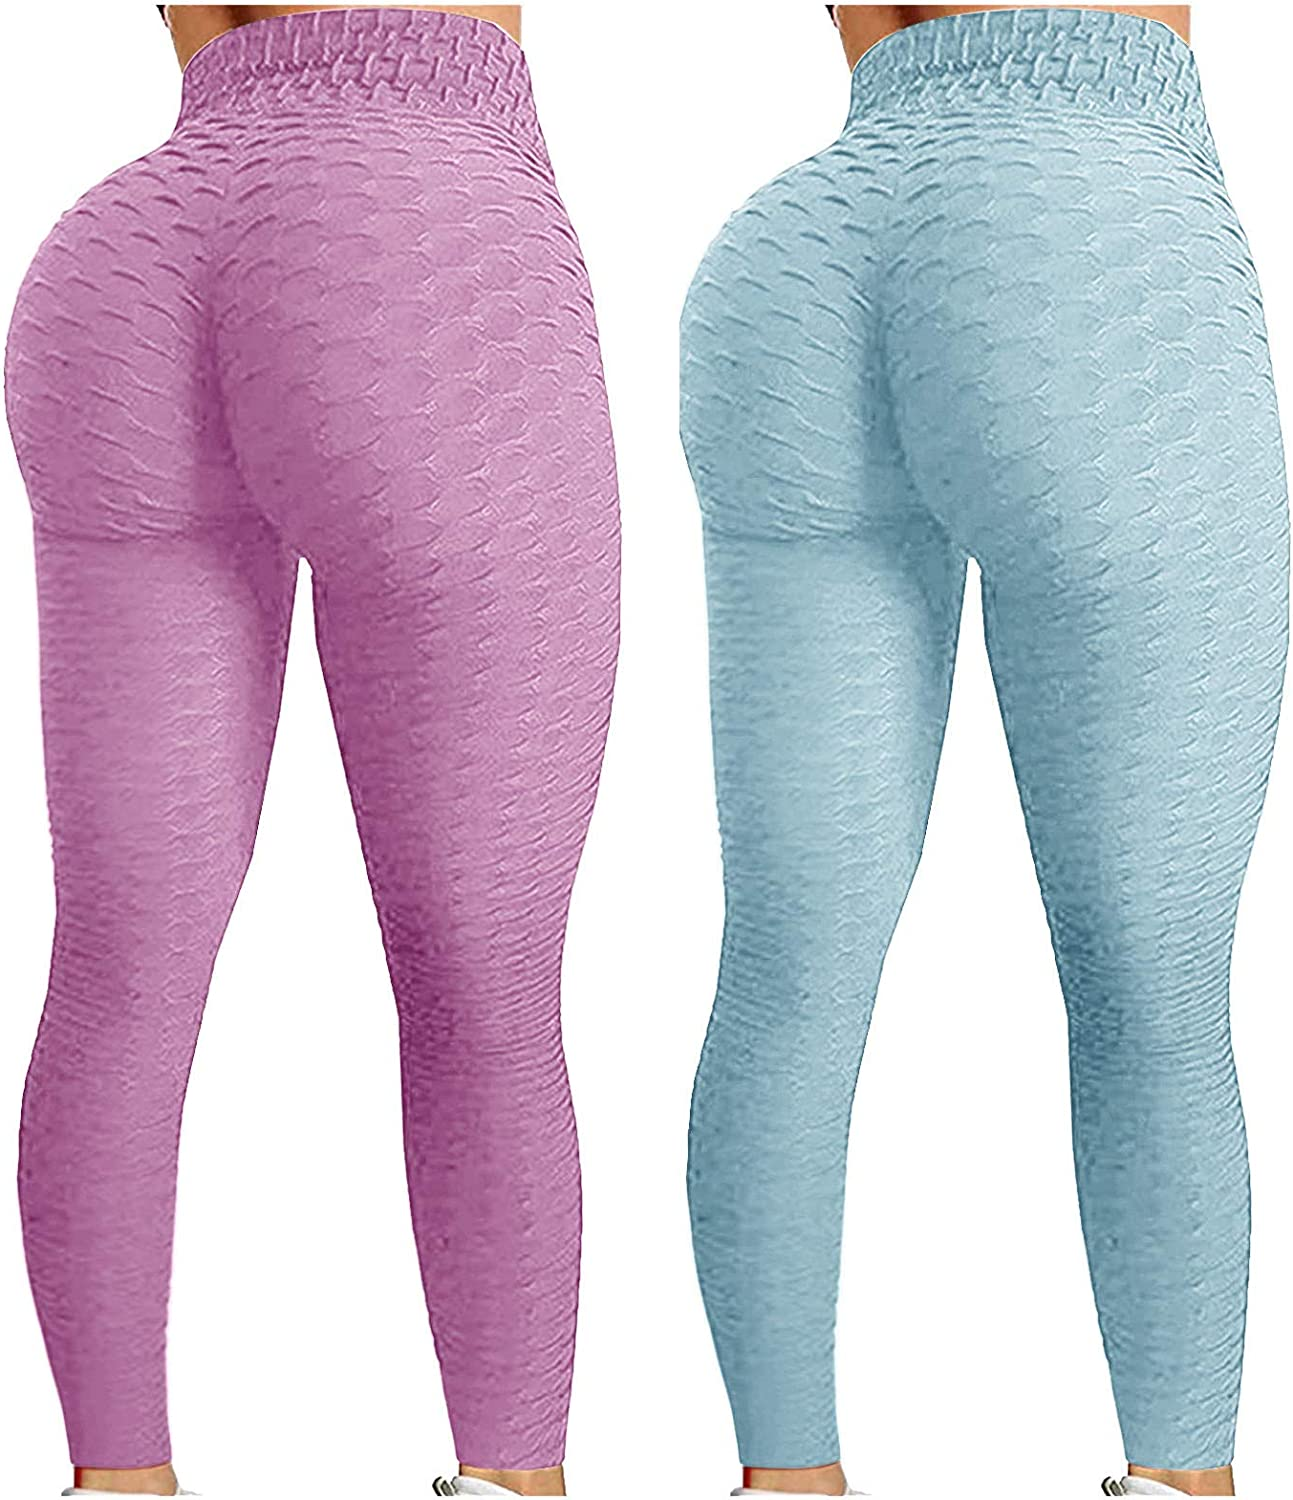 2 Pack High Waist Yoga Pants for Womens, Butt Lift Yoga Leggings Workout Tummy Control Tights